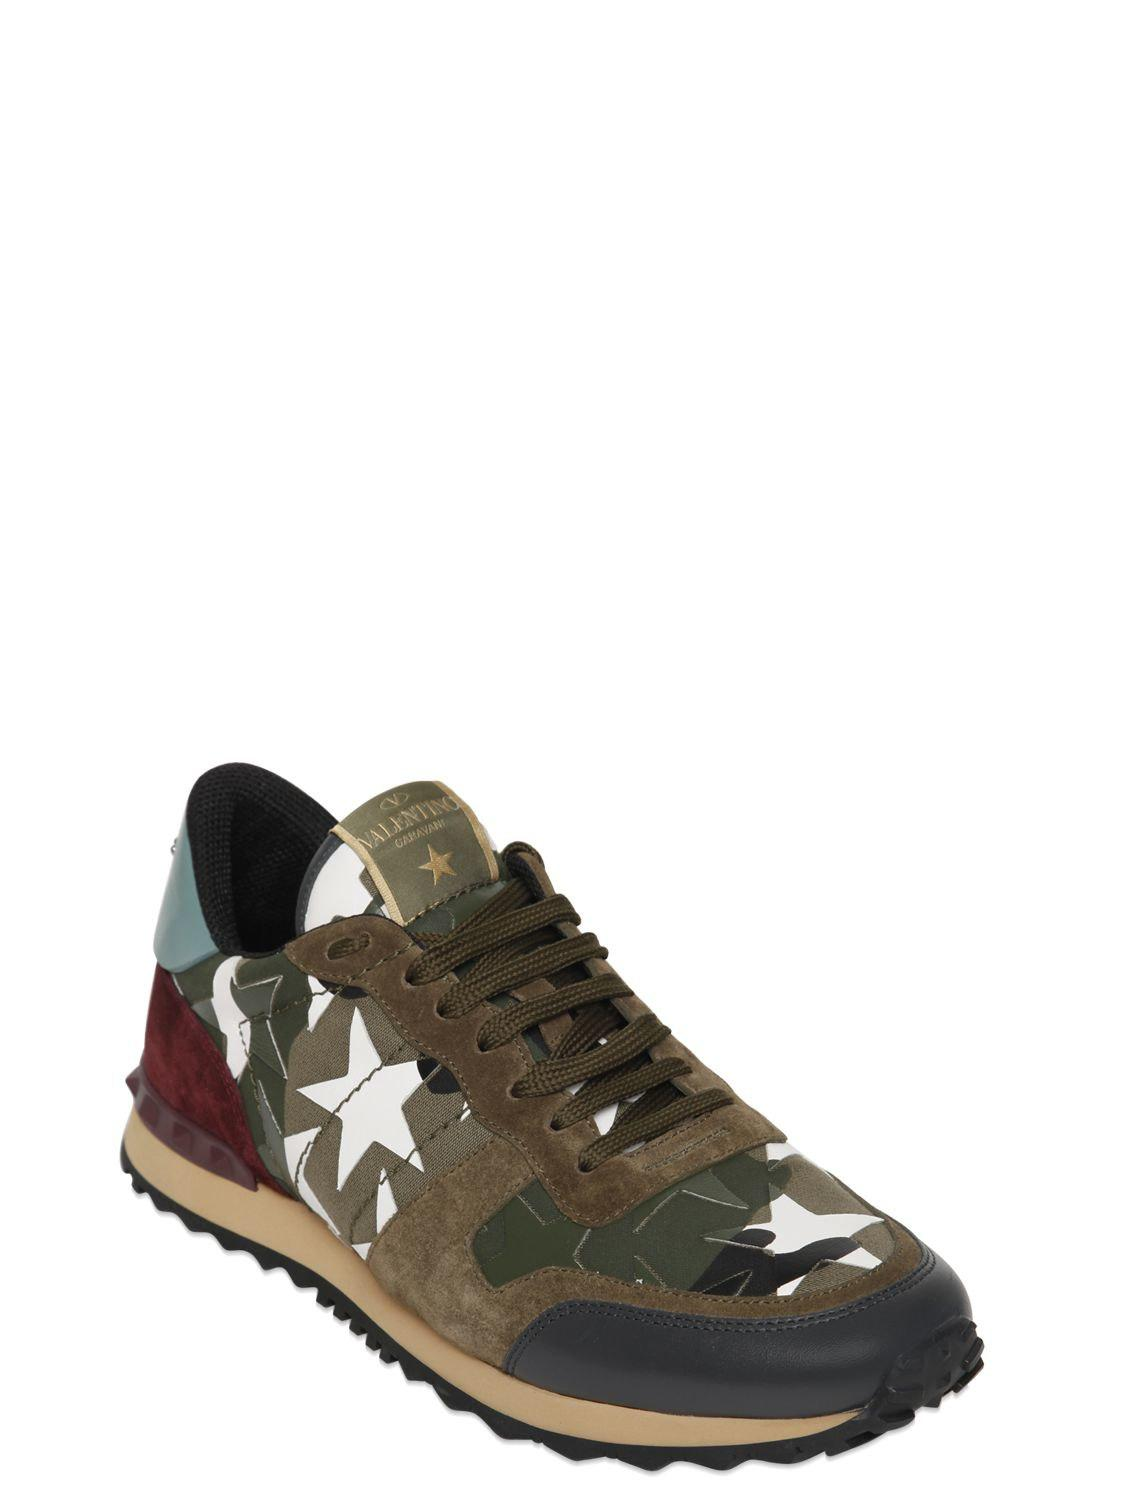 2af2d08901fc0 Valentino Rockrunner Camustars Canvas Sneakers in Green for Men - Lyst